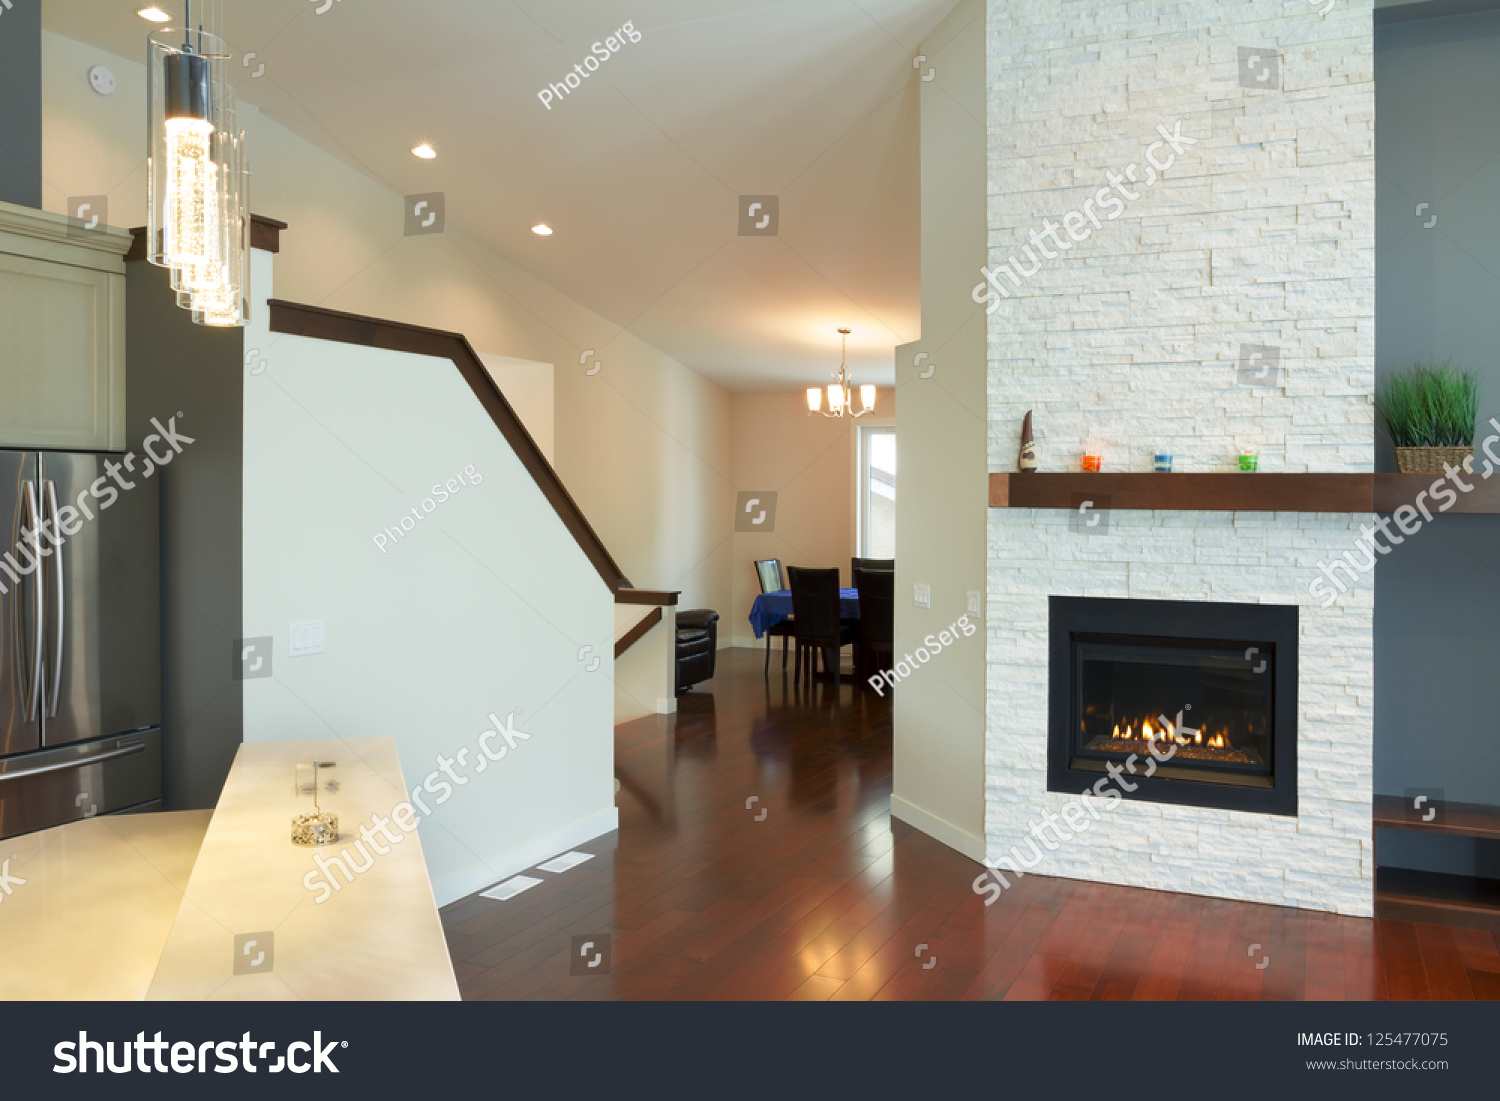 Interior design of modern Living room with fireplace in a new house #125477075